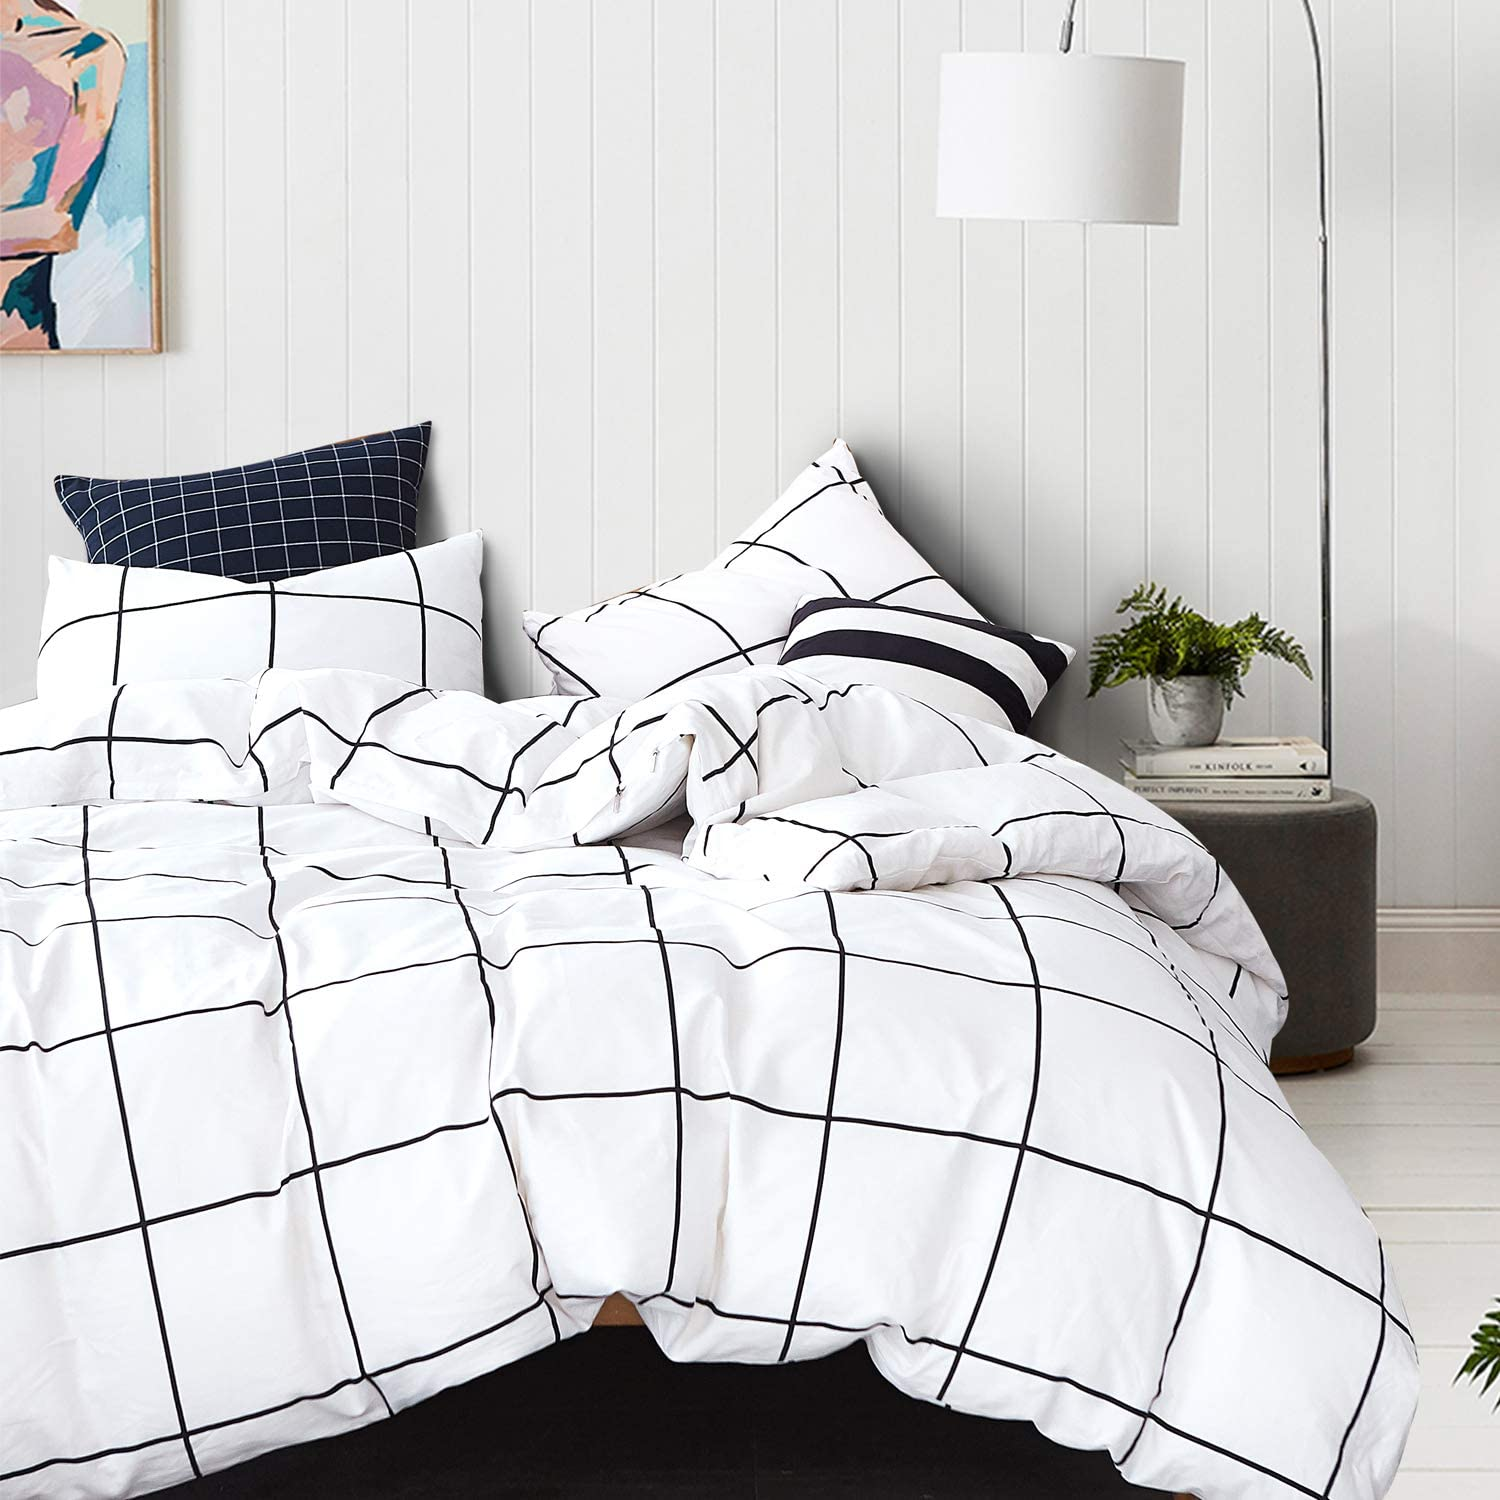 Wellboo White Grid Duvet Cover Cotton Plaid Grid Bedding Sets QueenFull Checkered Adult Women Covers Large Square Reversible Duvet Black and White Geometric Modern Lines Duvet Cover No Insert